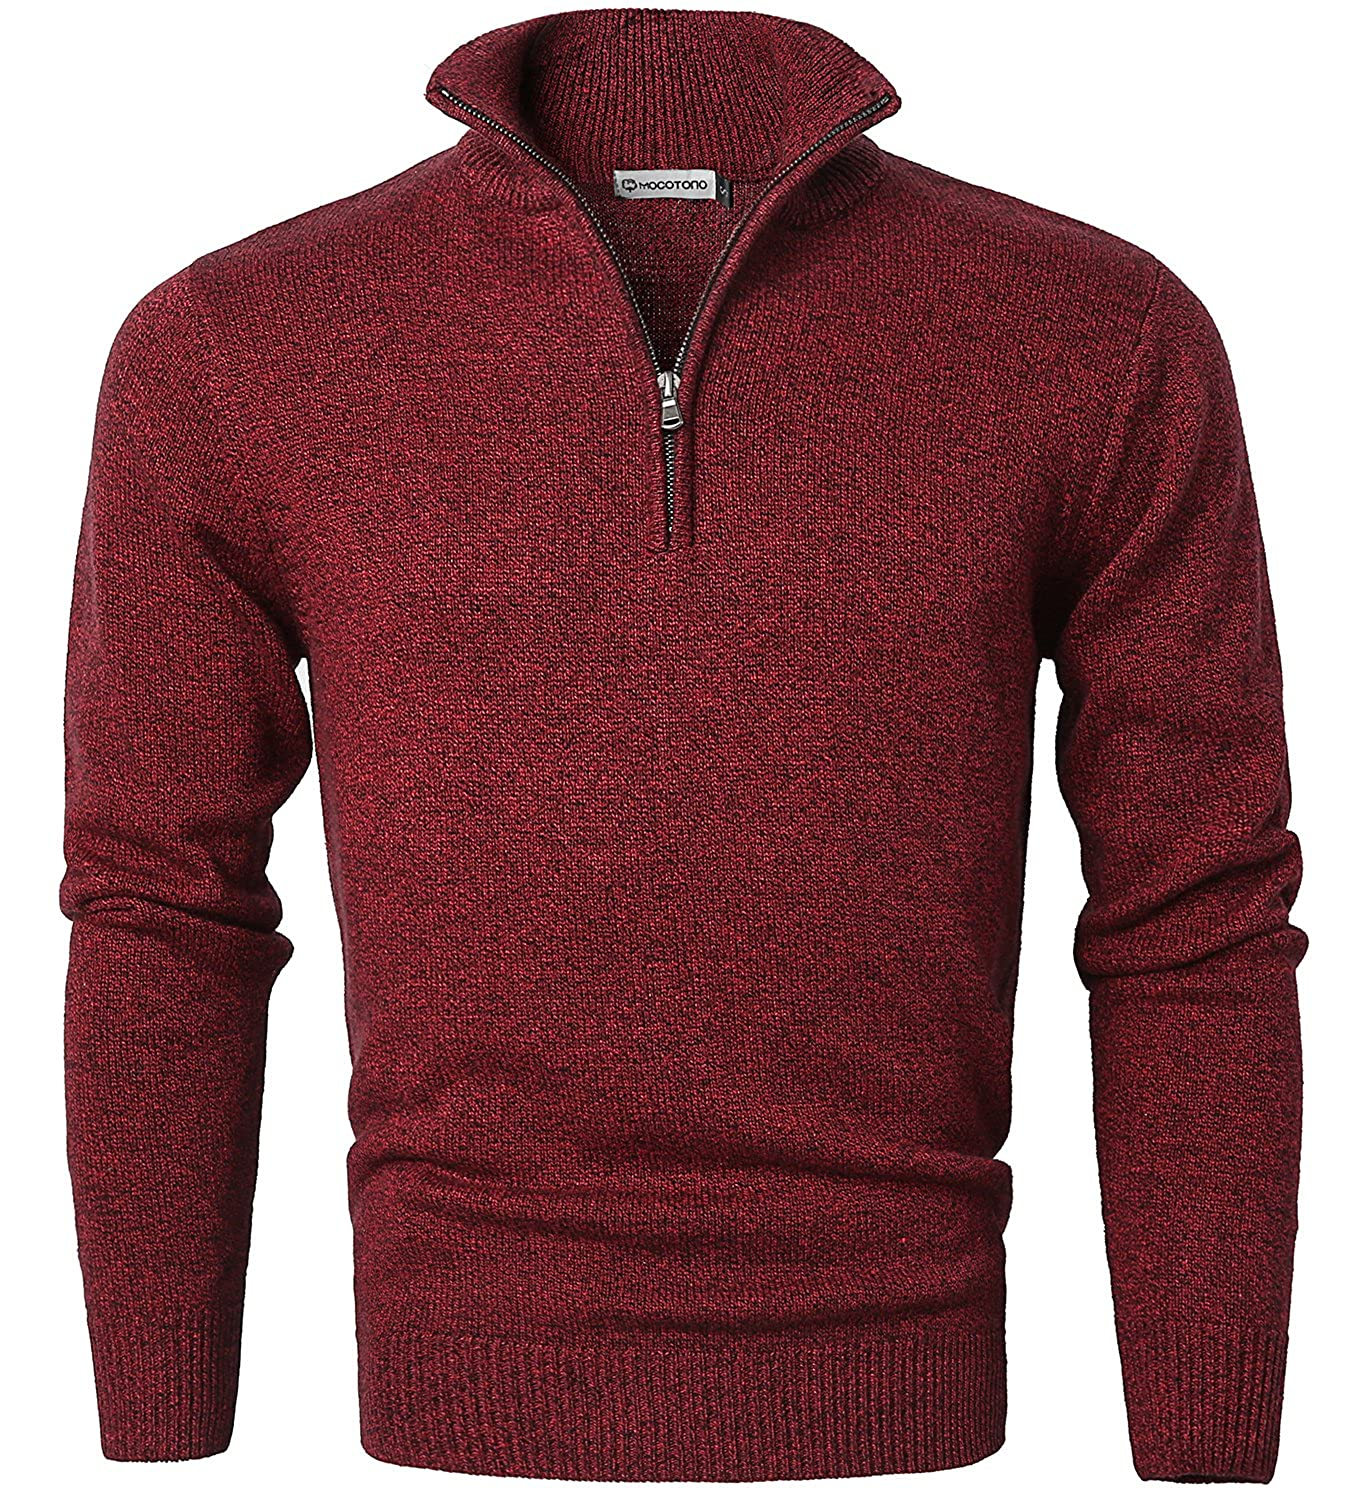 MOCOTONO Men's Long Sleeve Turtleneck Zip up Pullover Knit Casual Sweater MY-SB013